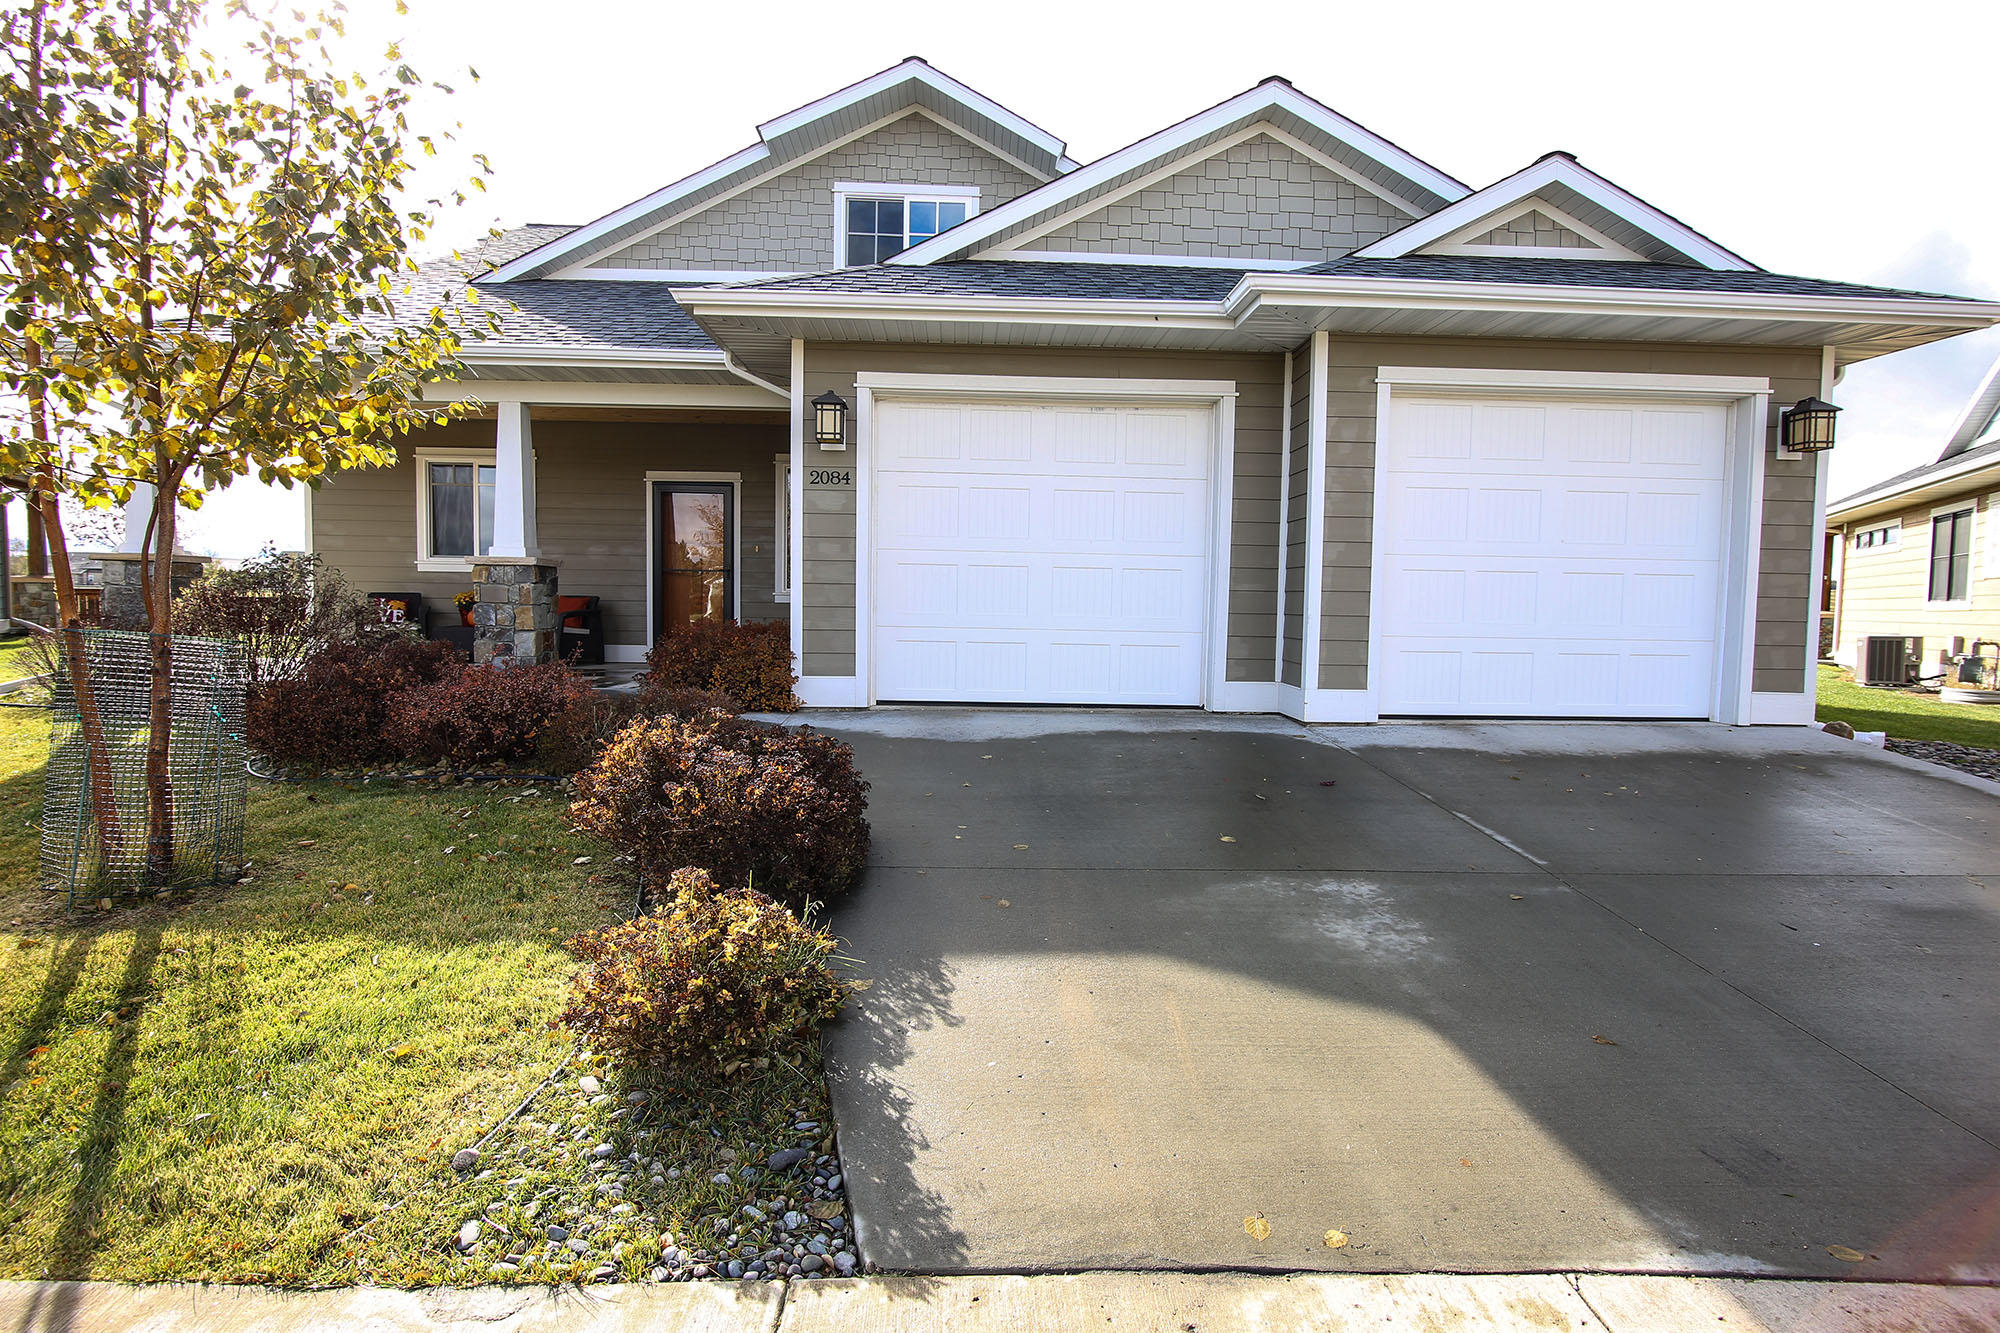 2084 Featherbed Lane, Sheridan, Wyoming 82801, 3 Bedrooms Bedrooms, ,2.5 BathroomsBathrooms,Residential,For Sale,Featherbed,19-1085